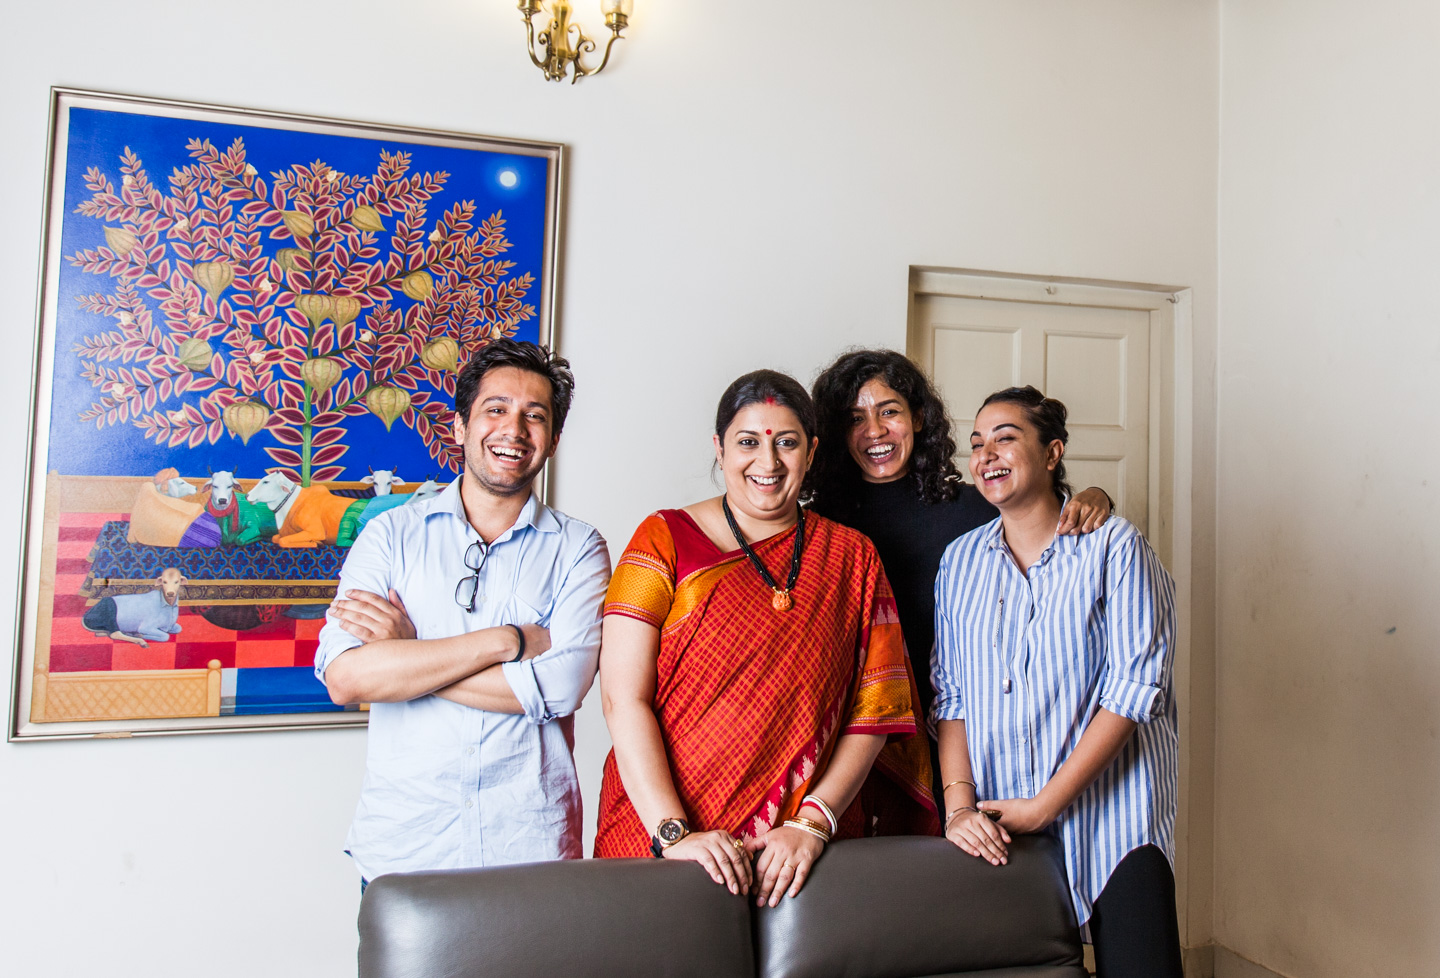 With Smriti Irani - Minister of textiles. I said cheers to women power after the shoot. She jokingly said 'Oh I'm half a man'